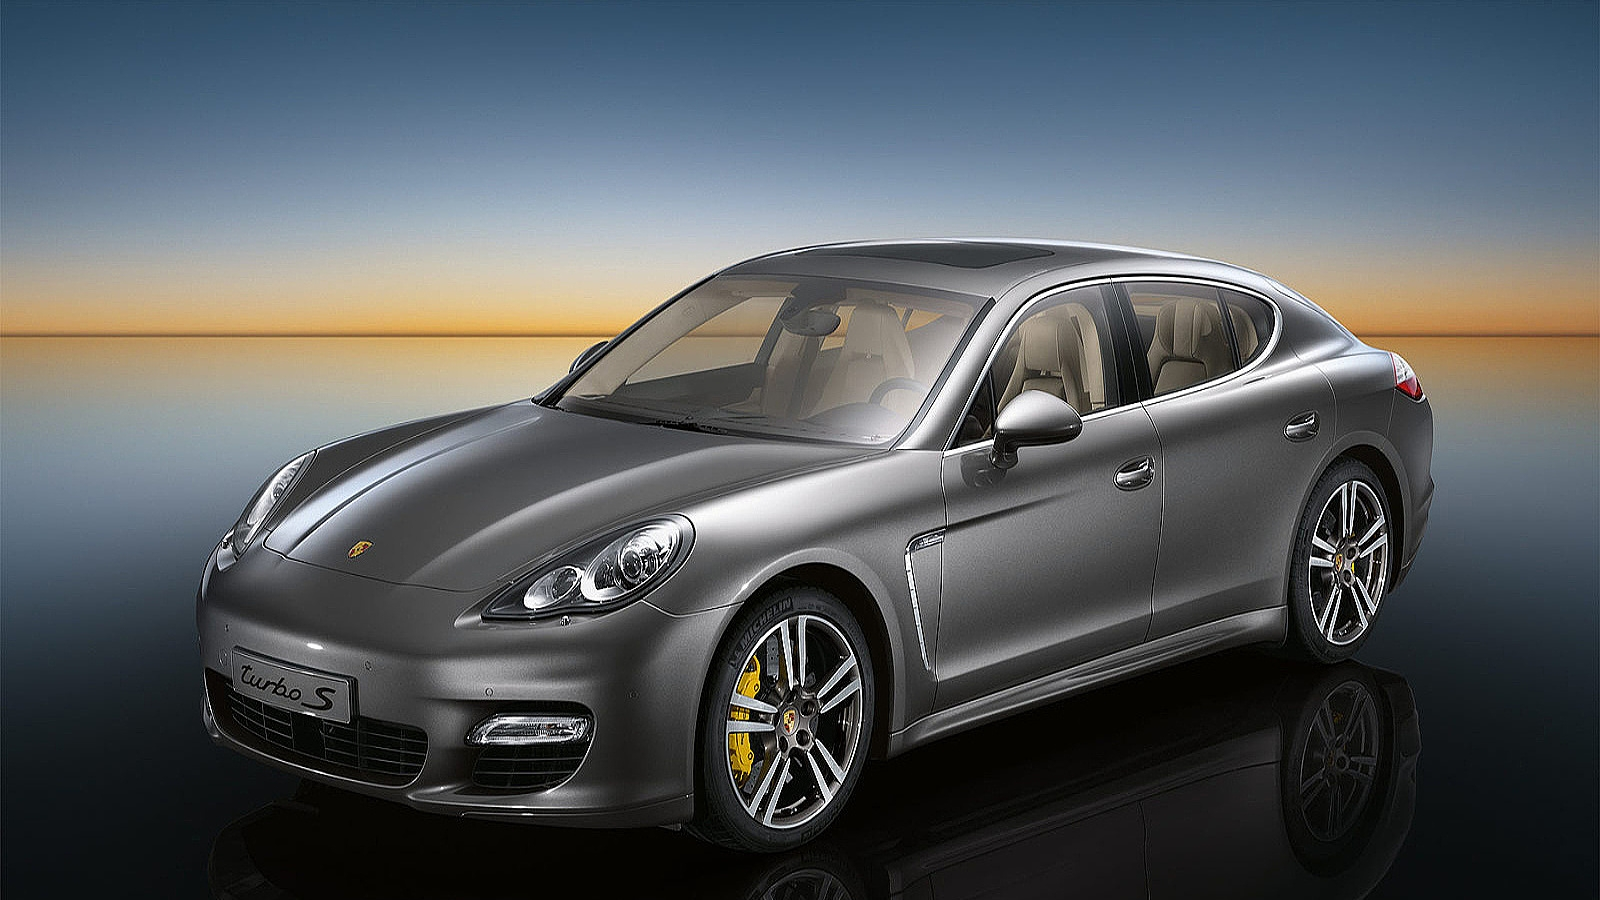 Porsche Panamera Turbo 4wd In Munich Hire Car Rental Pd Cars Com